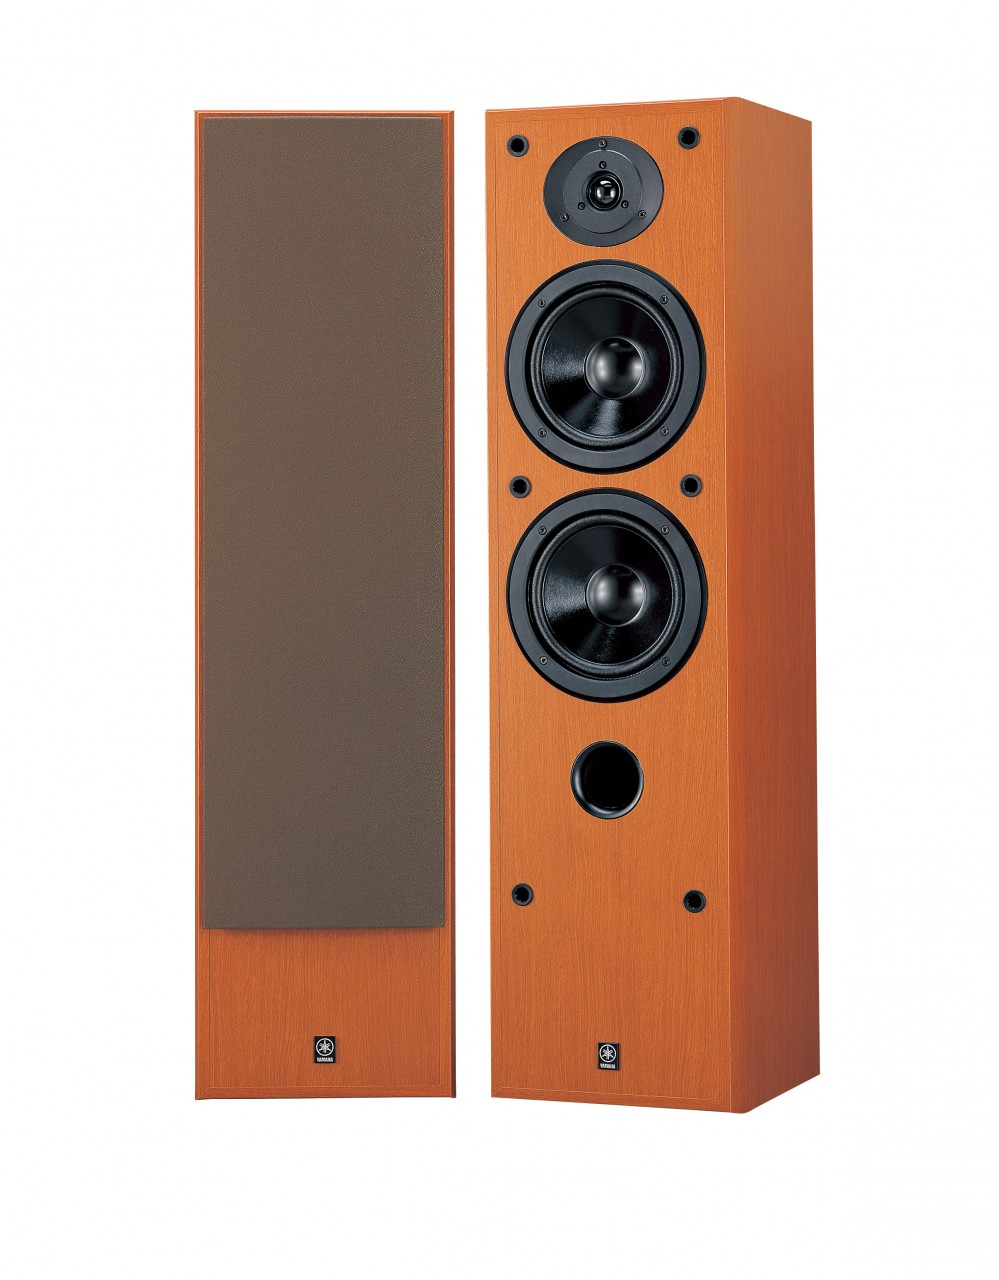 yamaha ns 50 floor standing speakers price in pakistan ForYamaha Ns 50 Speaker Pack